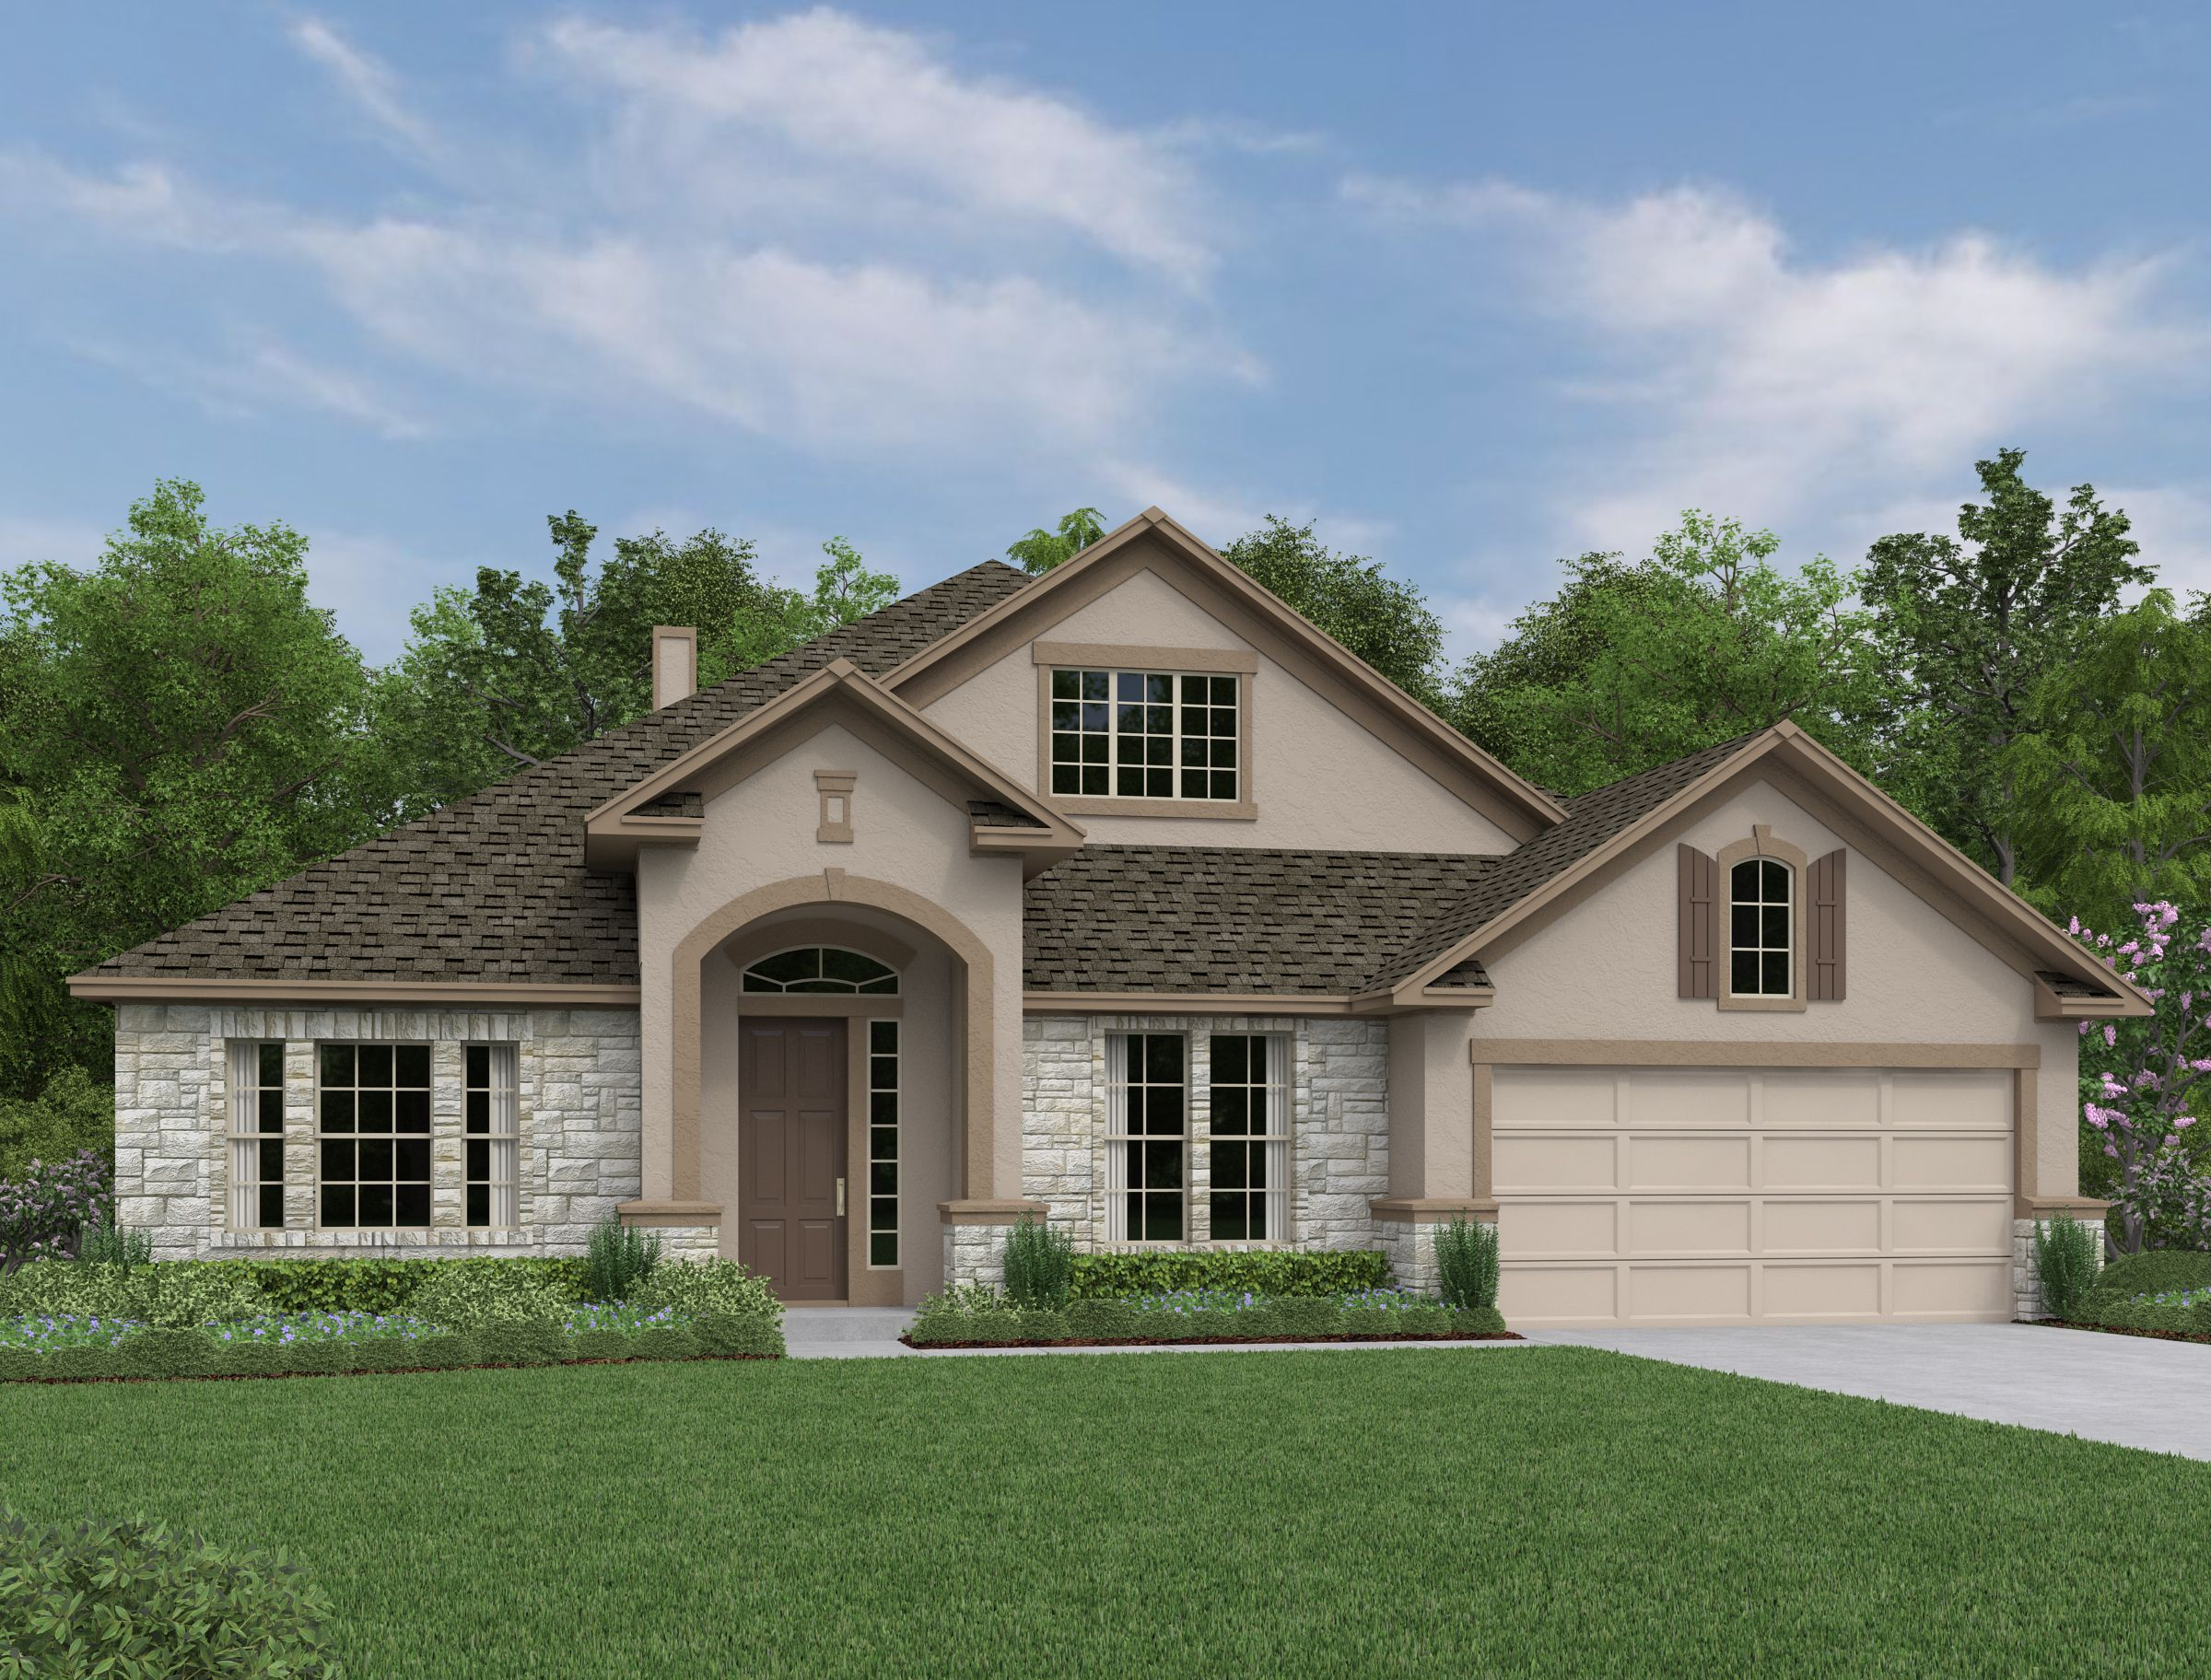 View large photos of Ashton Woods Homes, Kinder Ranch, Milam-1265643, San  Antonio, TX - New Home for Sale - HomeGain